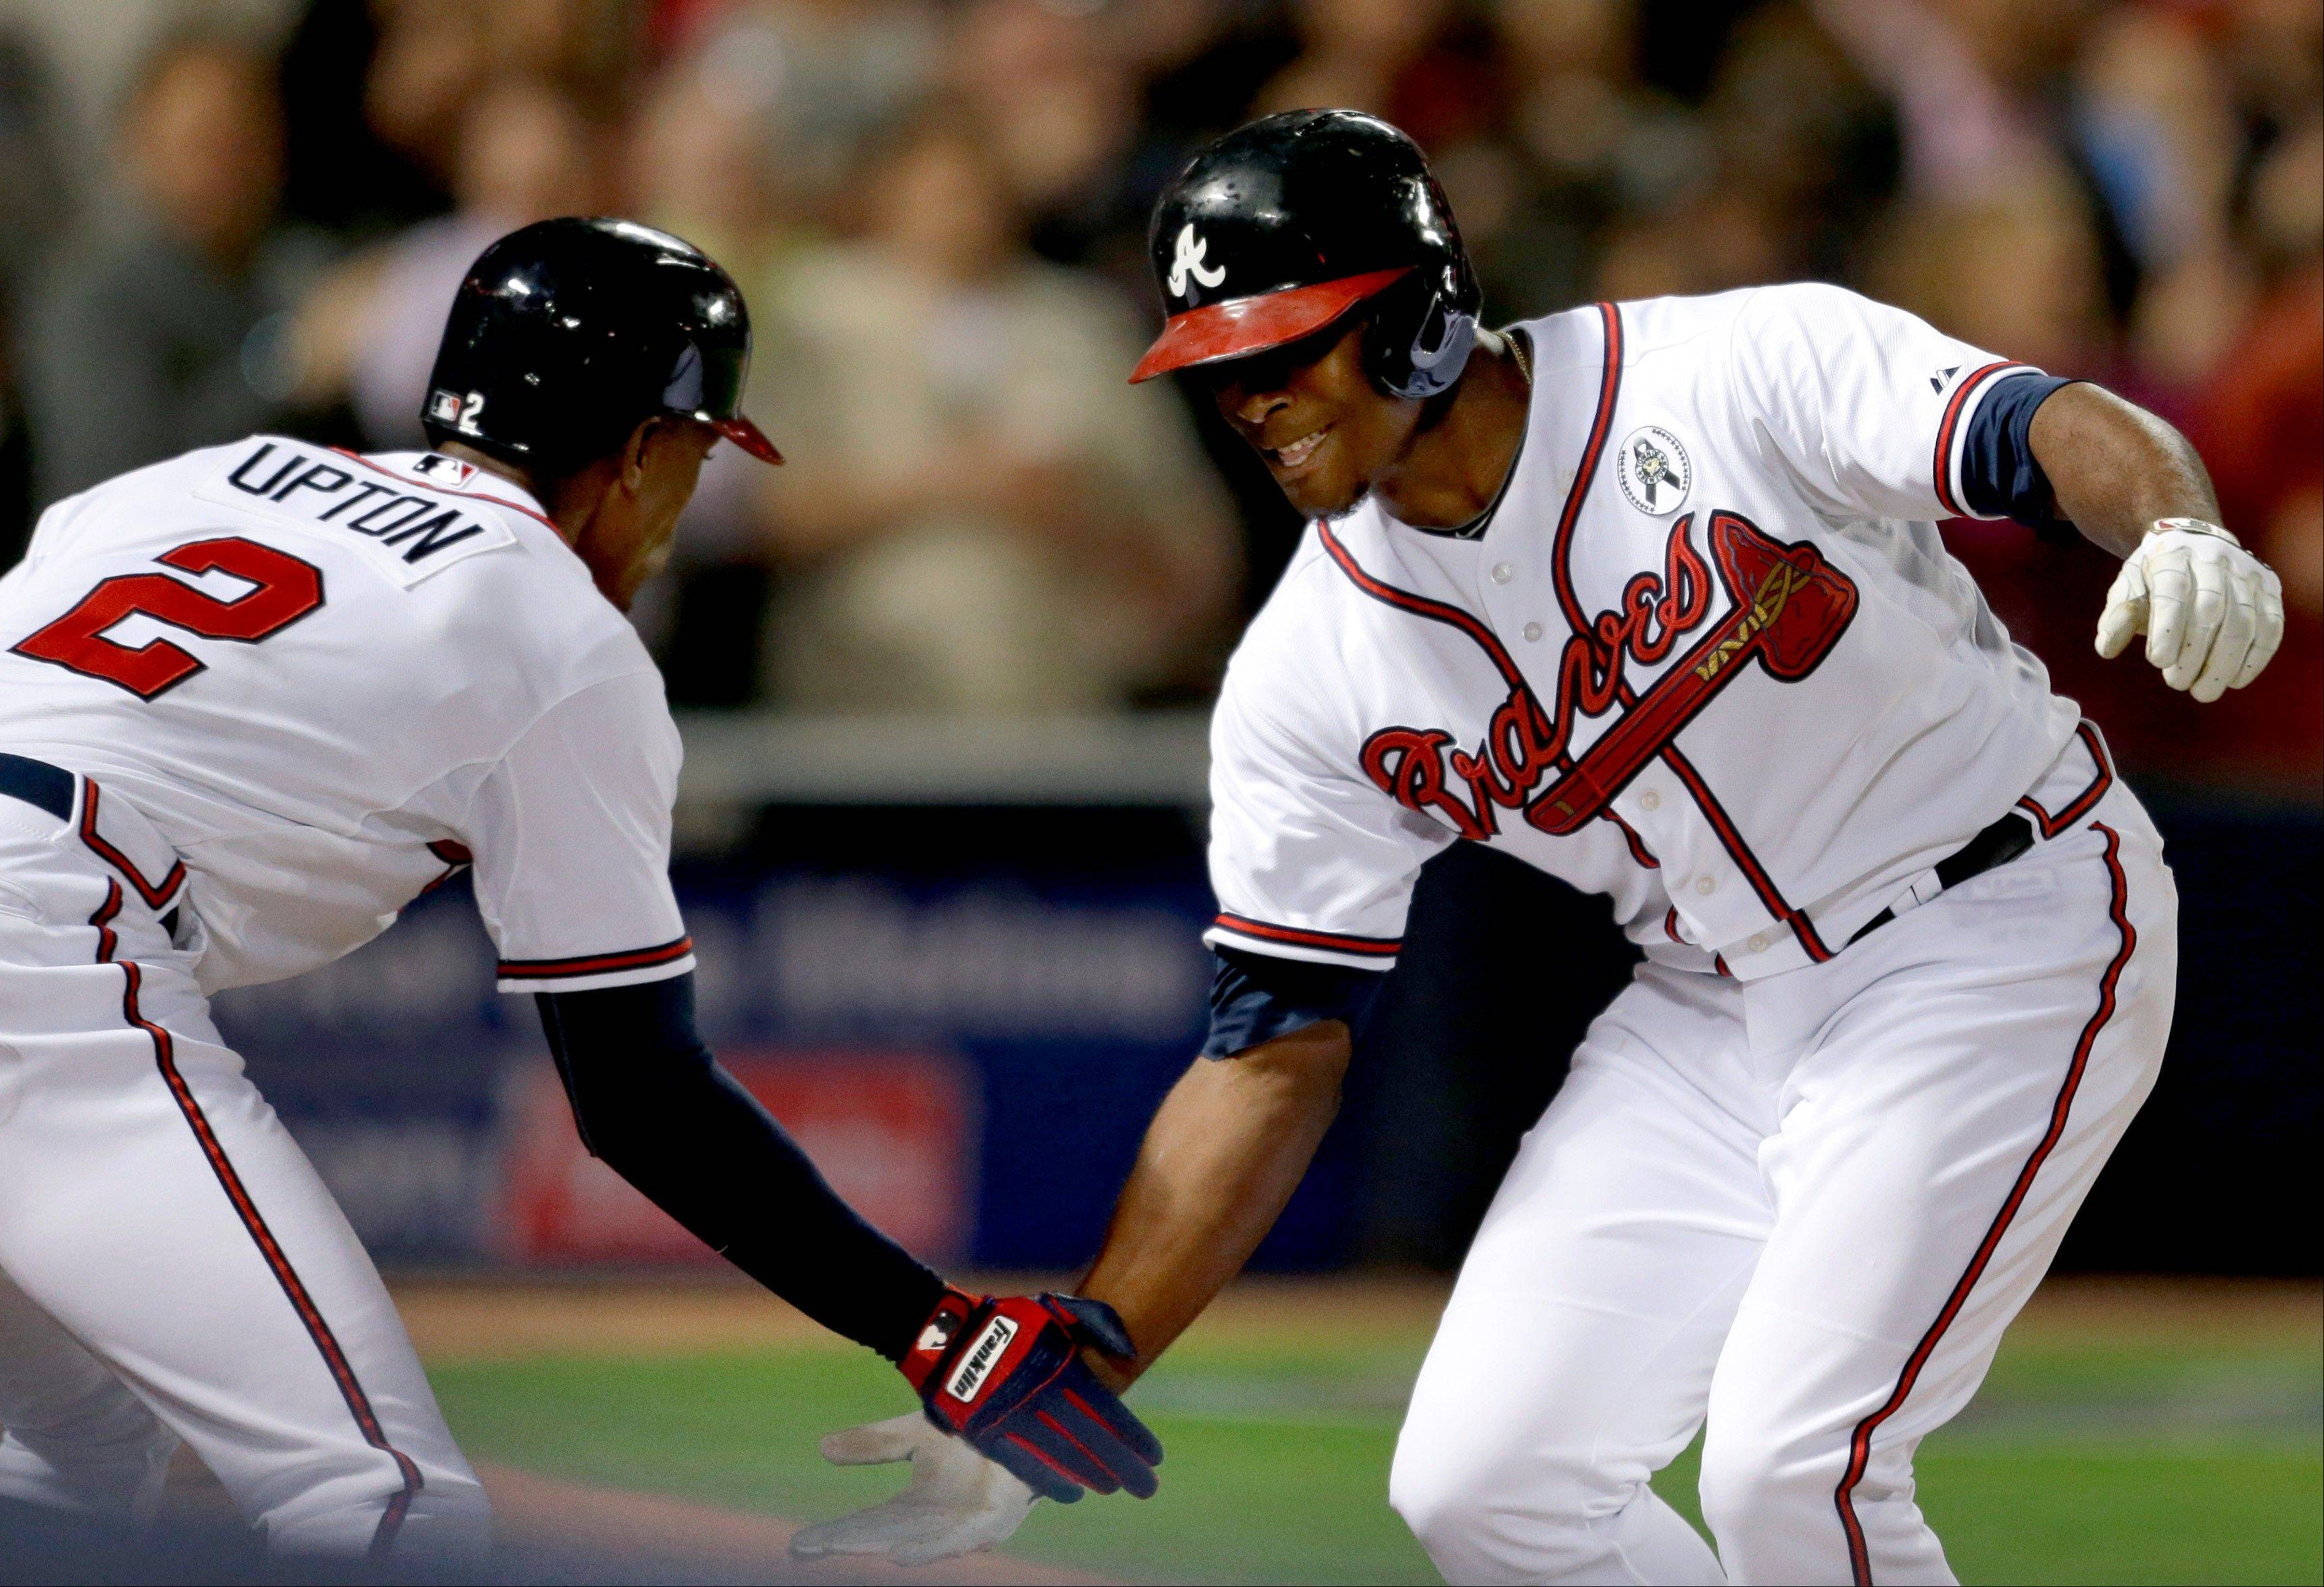 Braves hit 3 homers off Hamels, beat Phillies 7-5